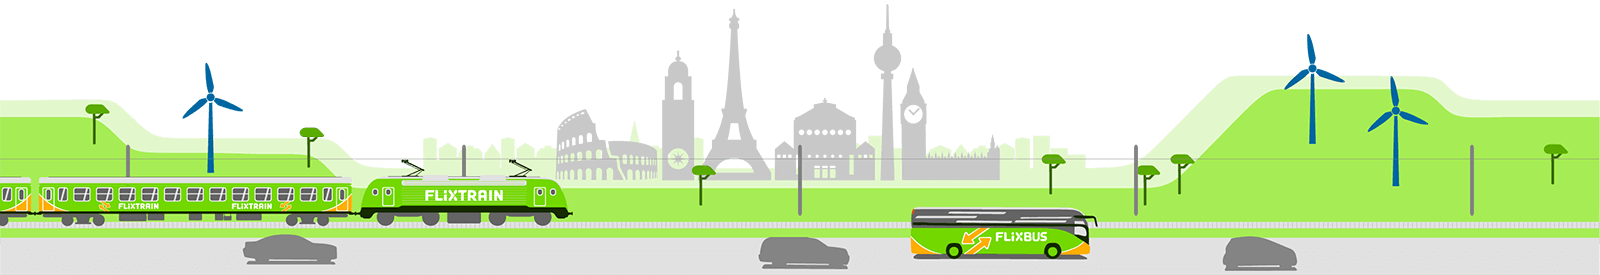 Careers at FlixMobility | Jobs at FlixBus, FlixTrain and Charter